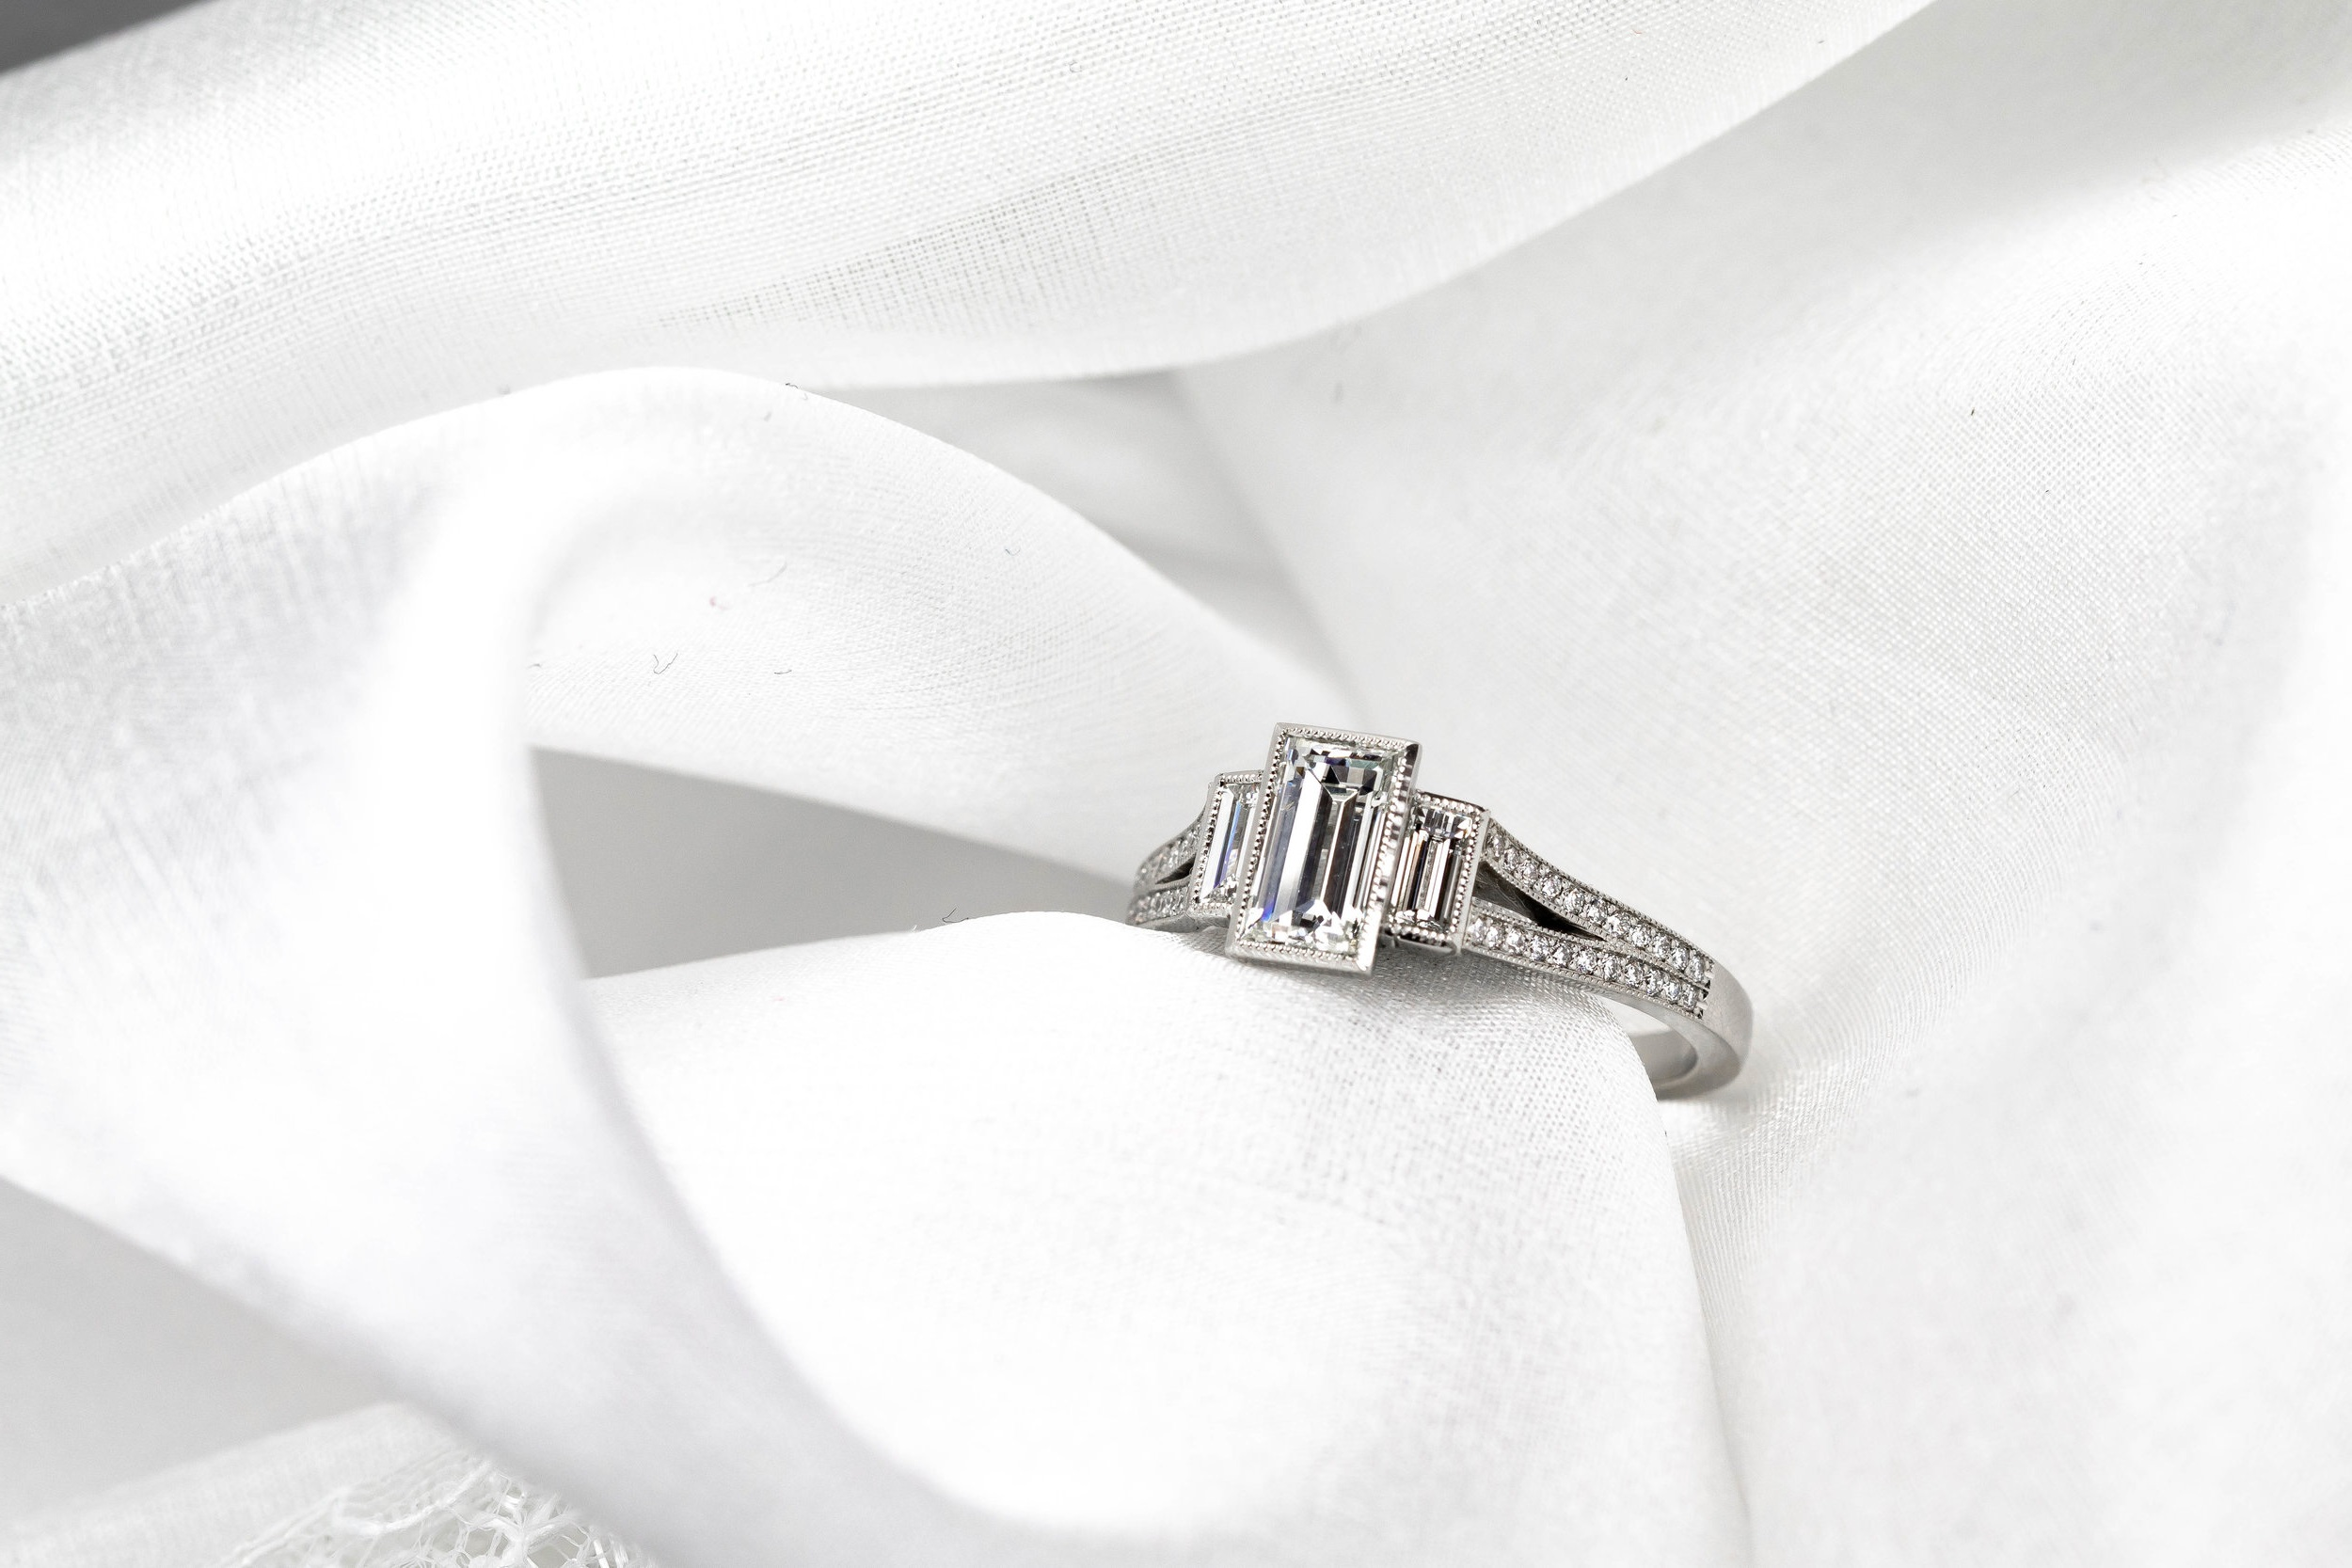 Platinum mounted 3 stone baguette diamond ring. Made in Chichester, England.